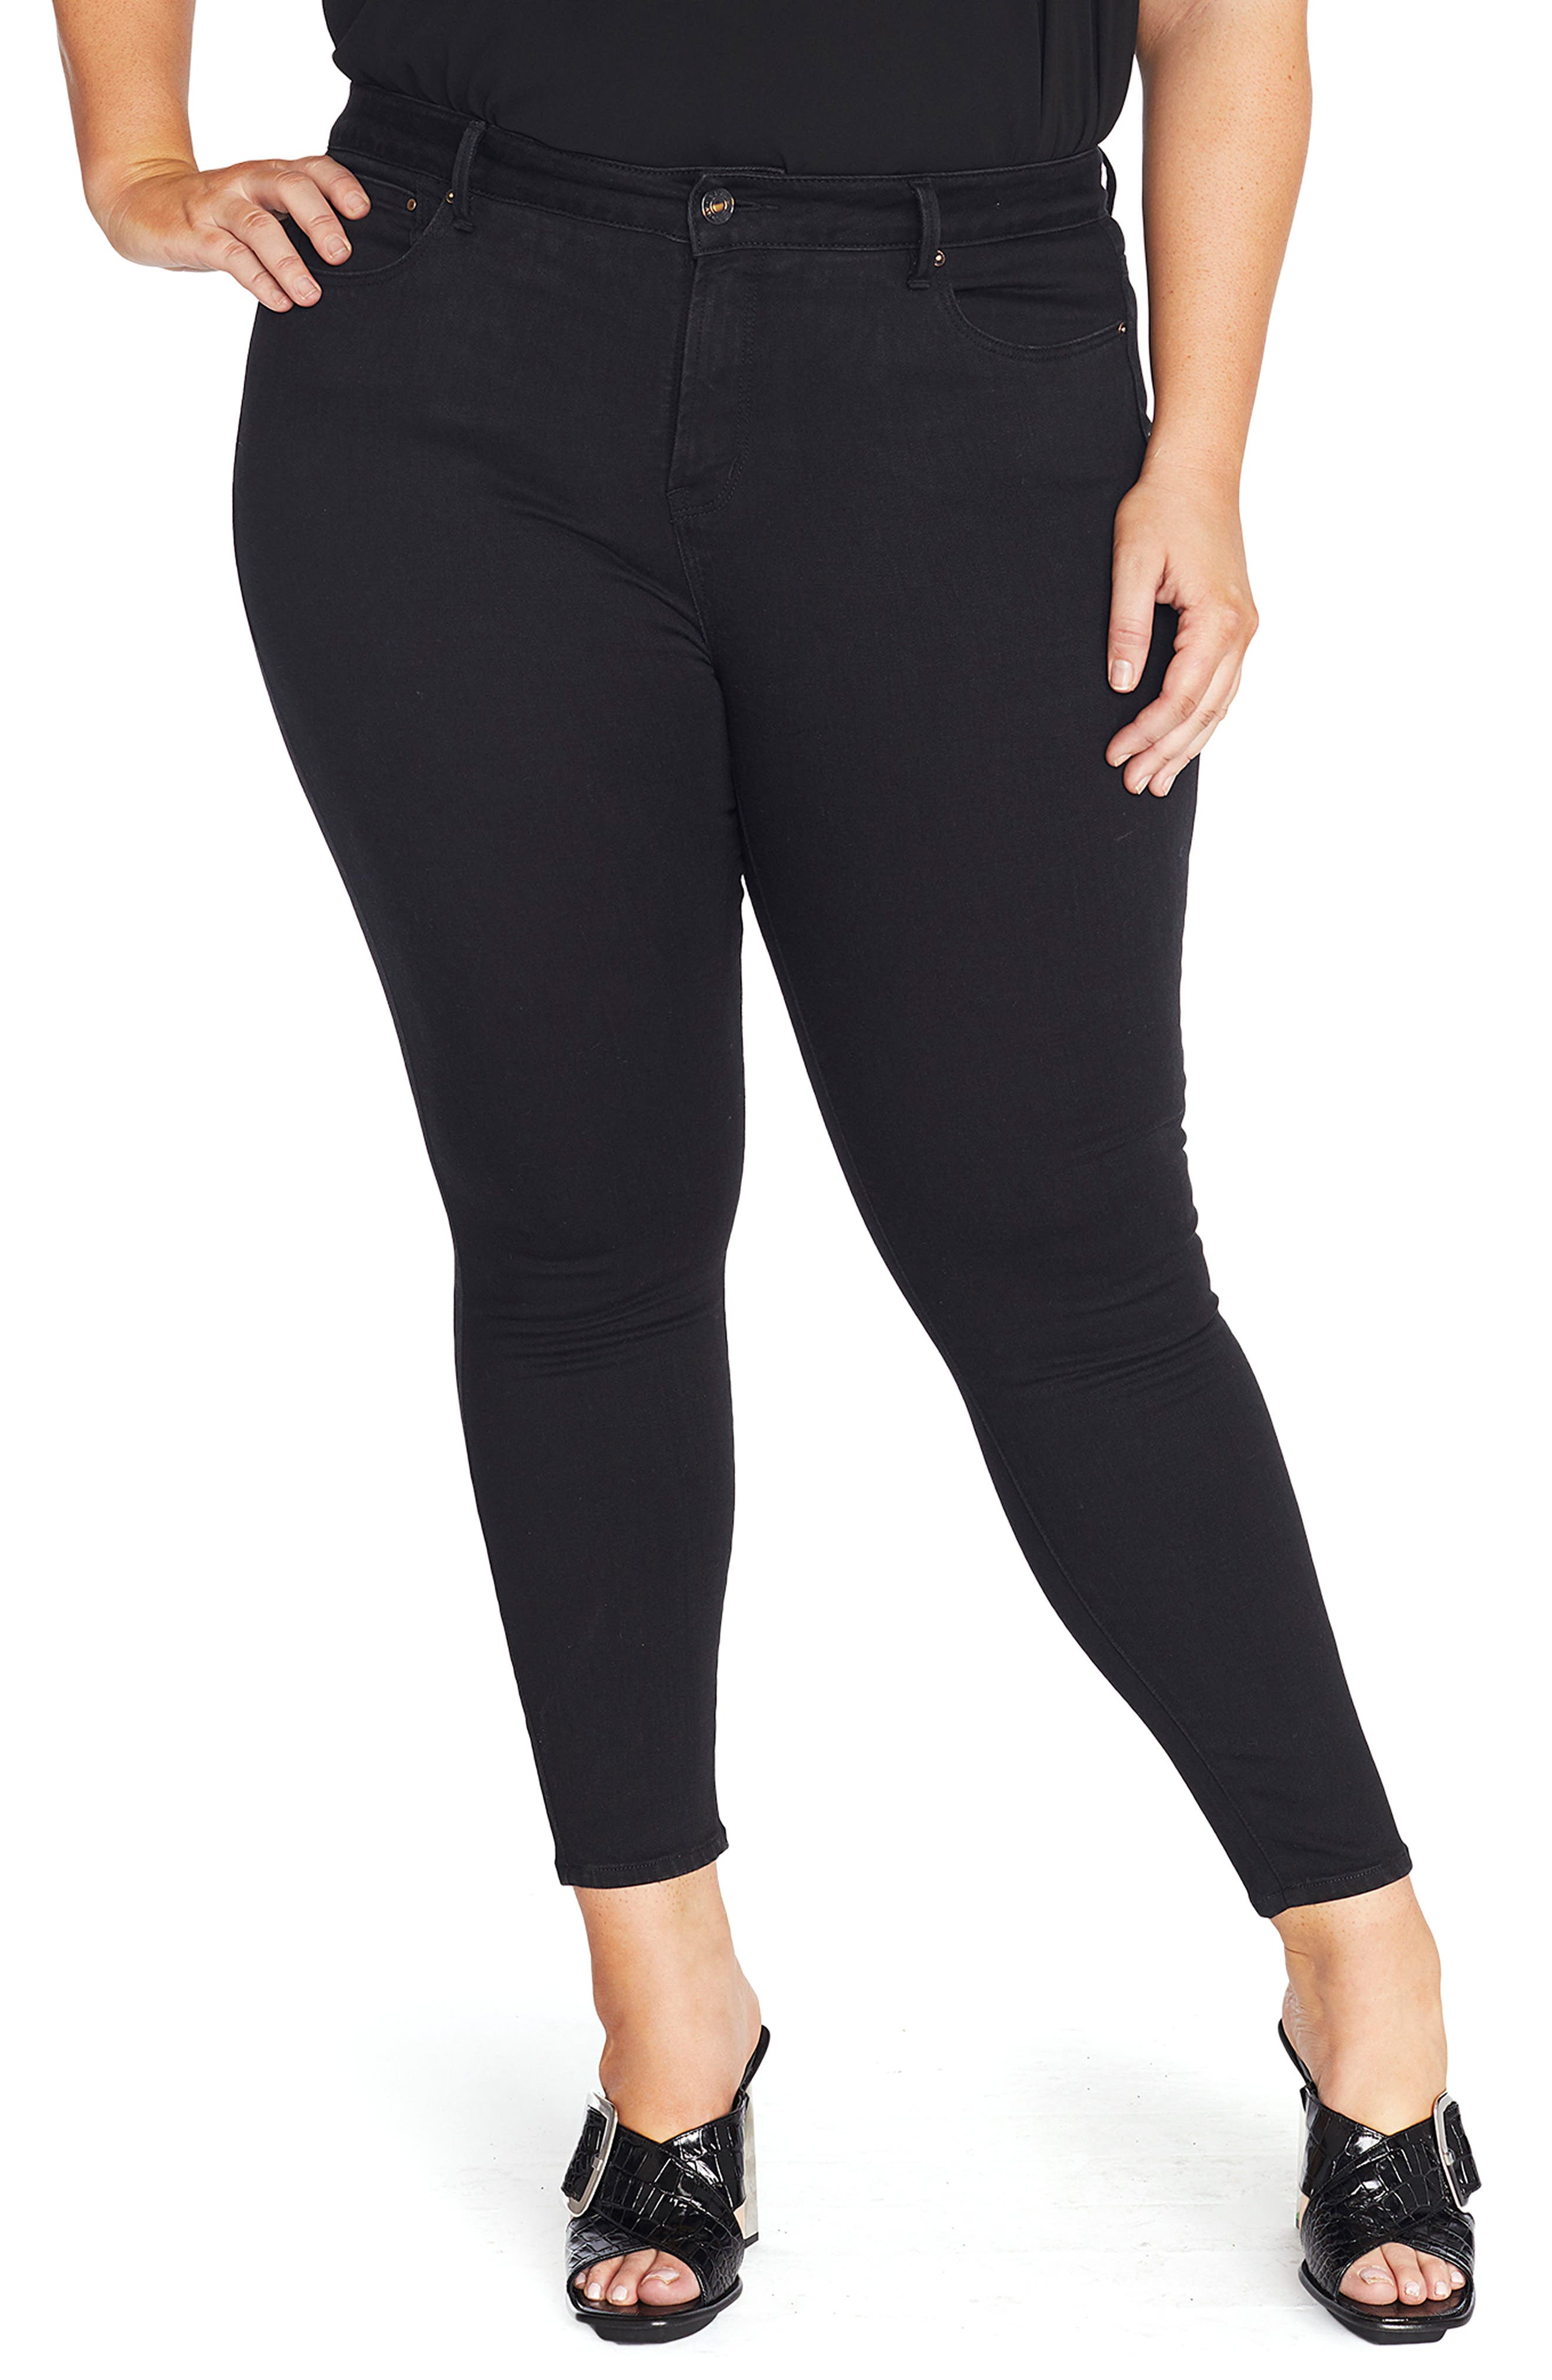 Main Image - REBEL WILSON X ANGELS The Pin Up Super Skinny Jeans (Plus Size)